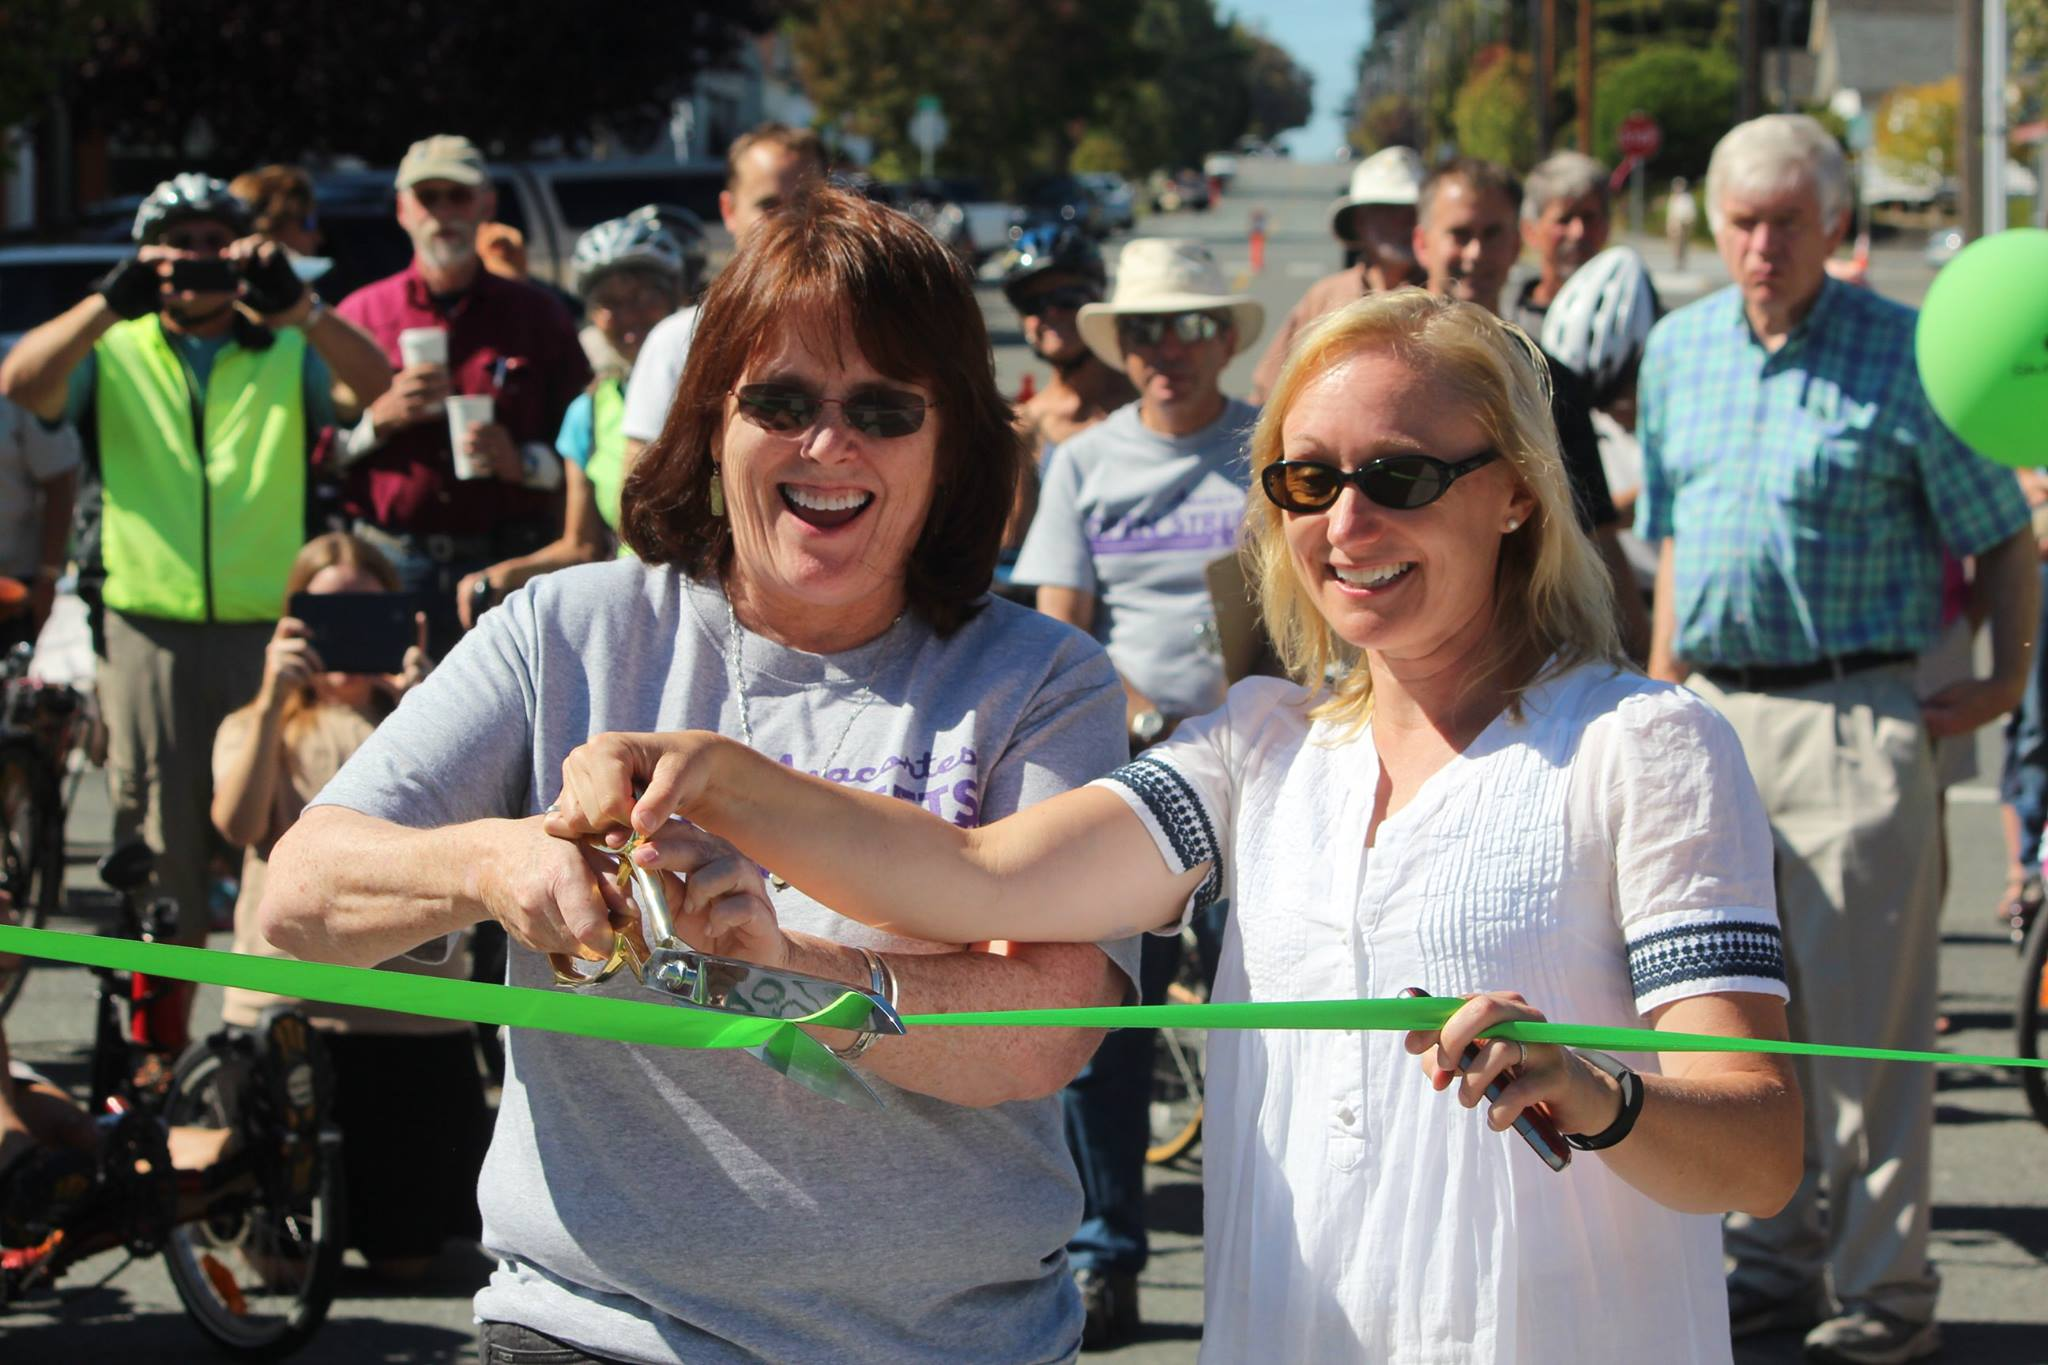 Anacortes Mayor Laurie Gere and WSDOT Sec. Lynn Peterson cut the ribbon in Anacortes for US Bike Route 10.